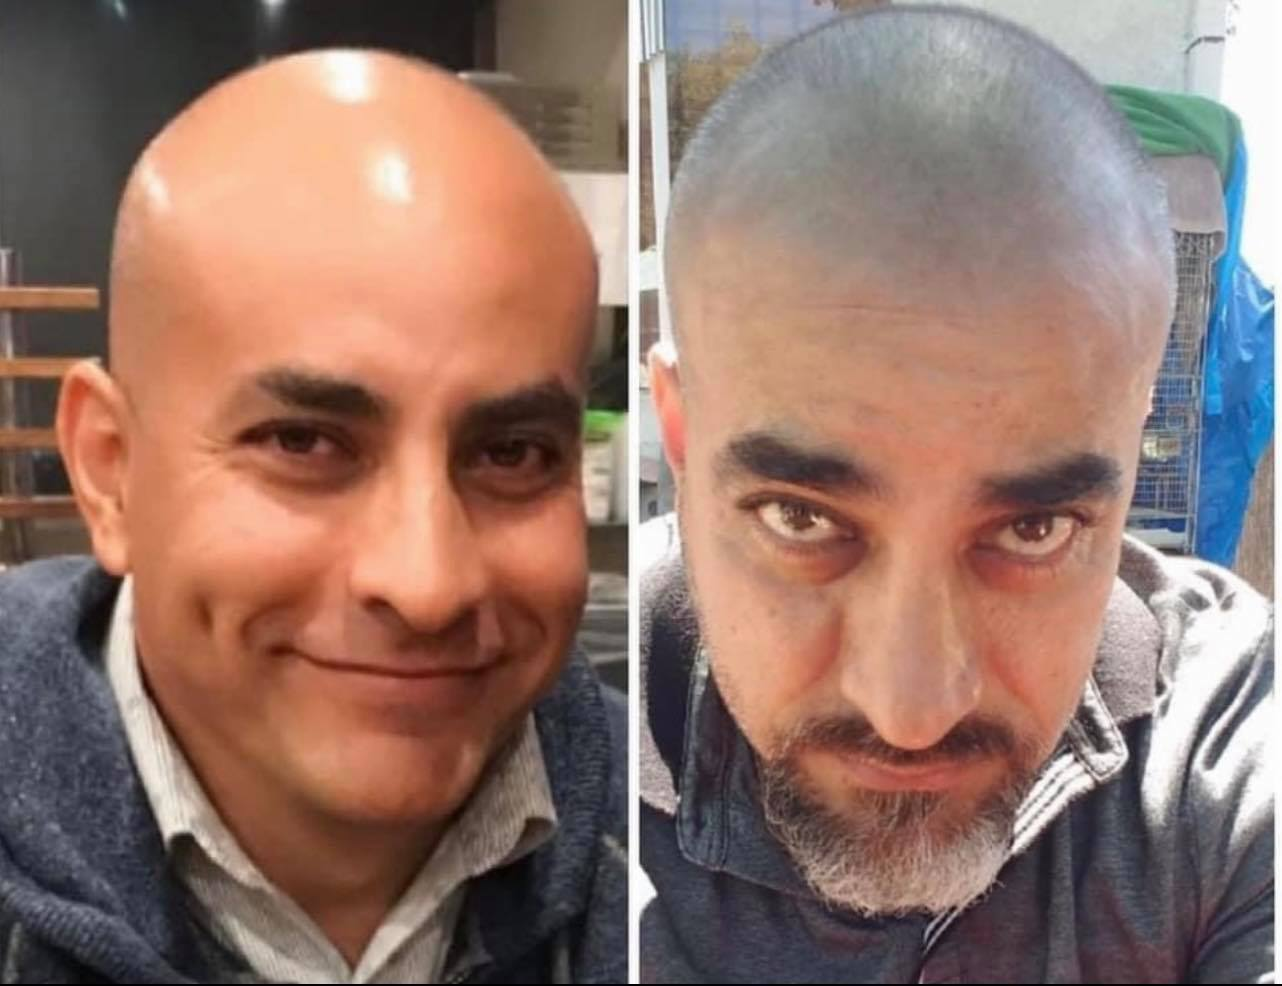 Juan Carlos's Before and After Results